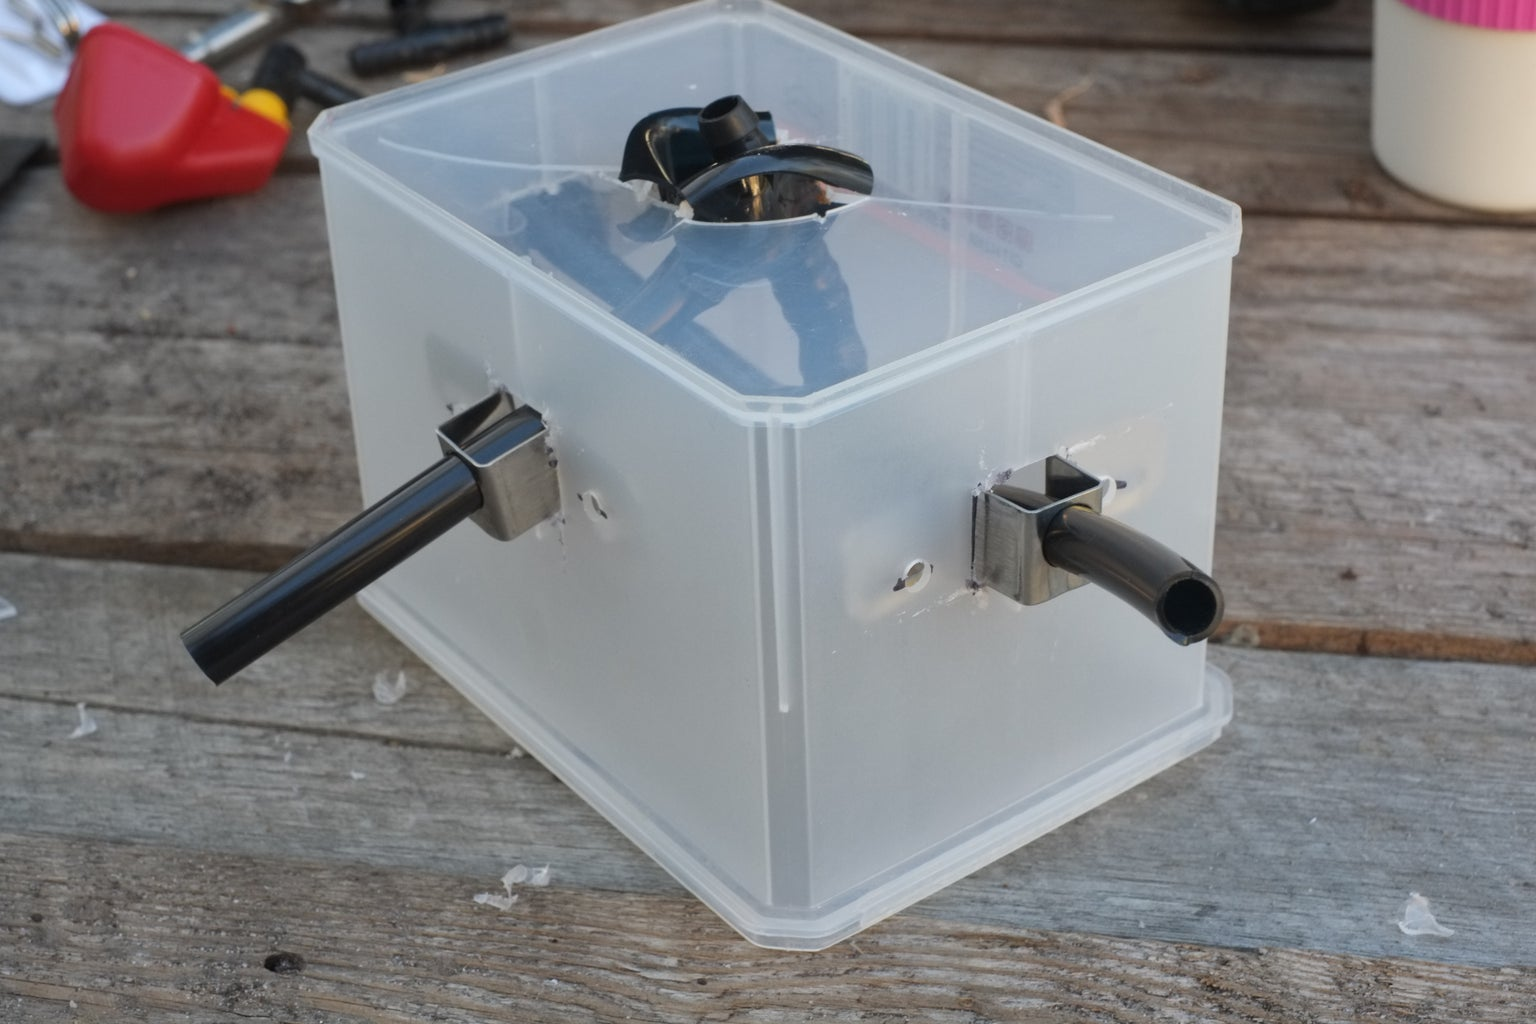 Putting the Junction Box Together